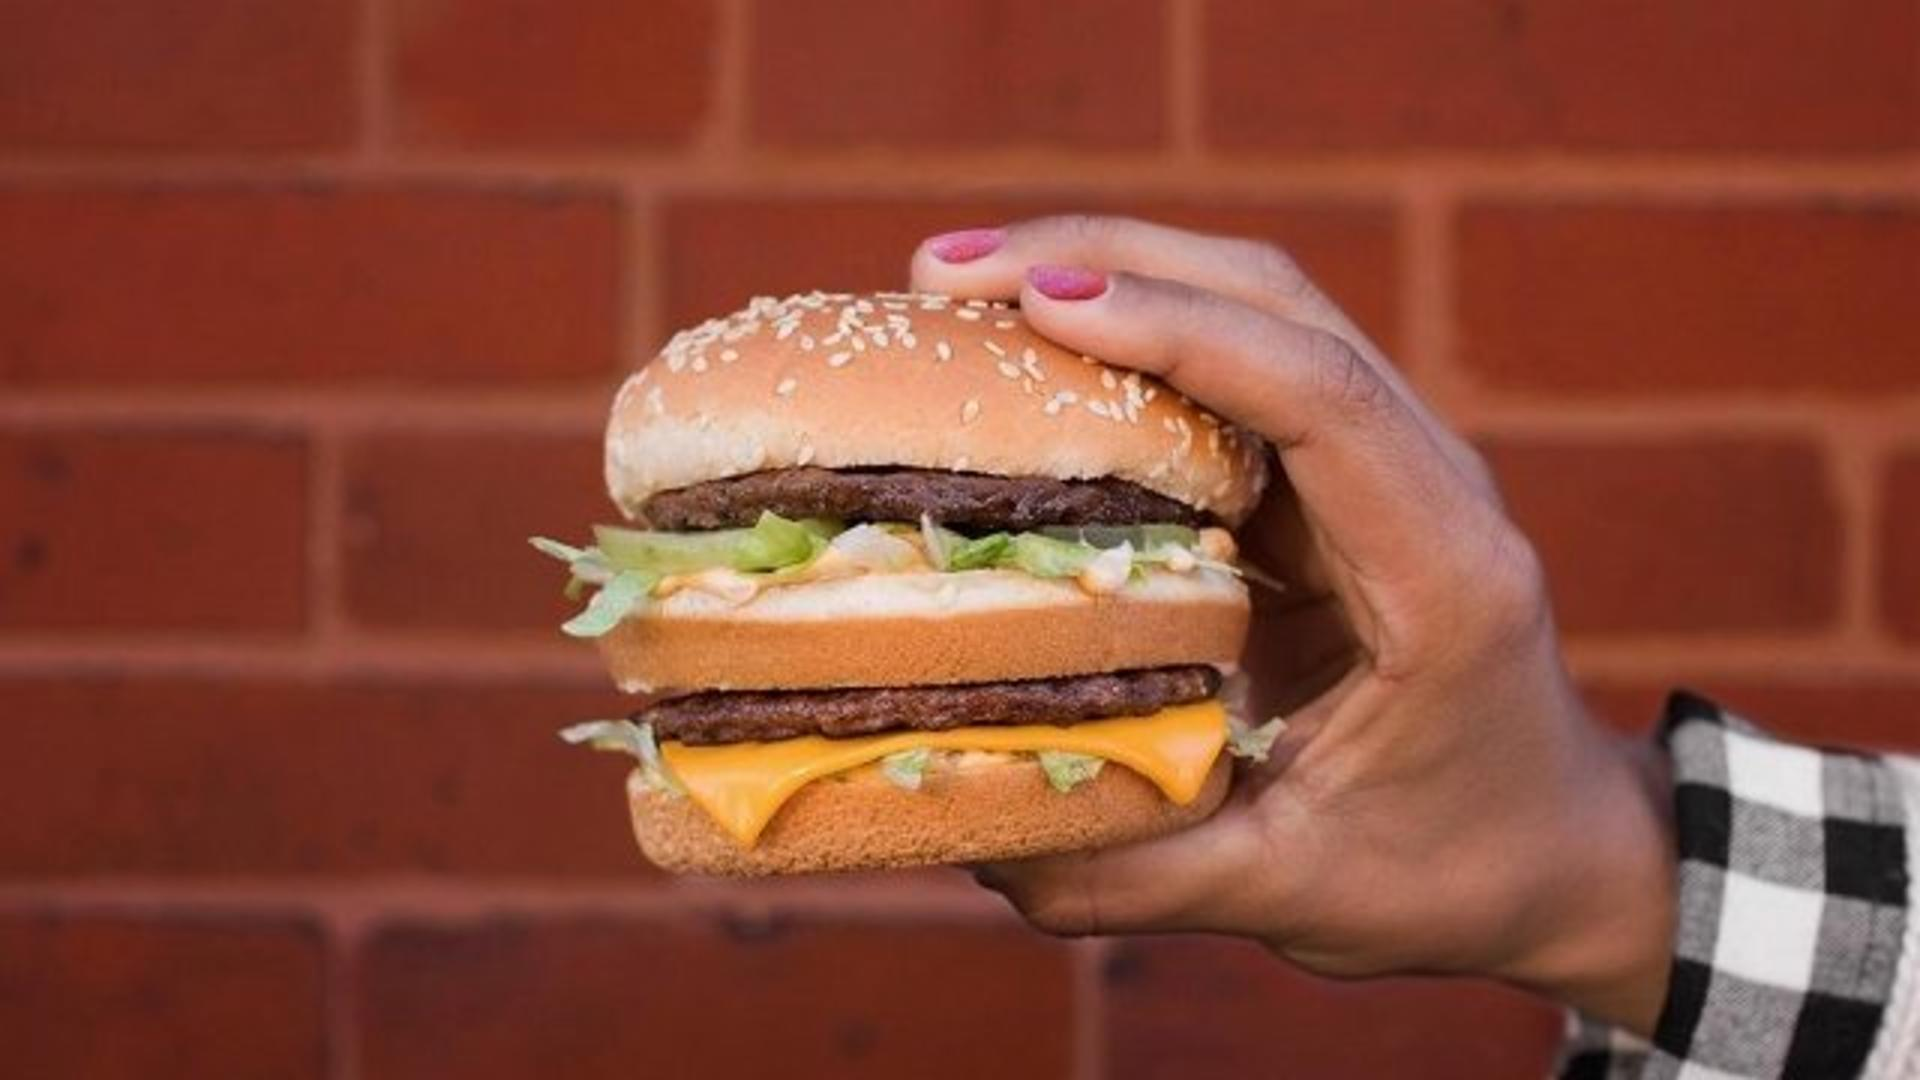 McDonald's Removes Preservatives From Burgers